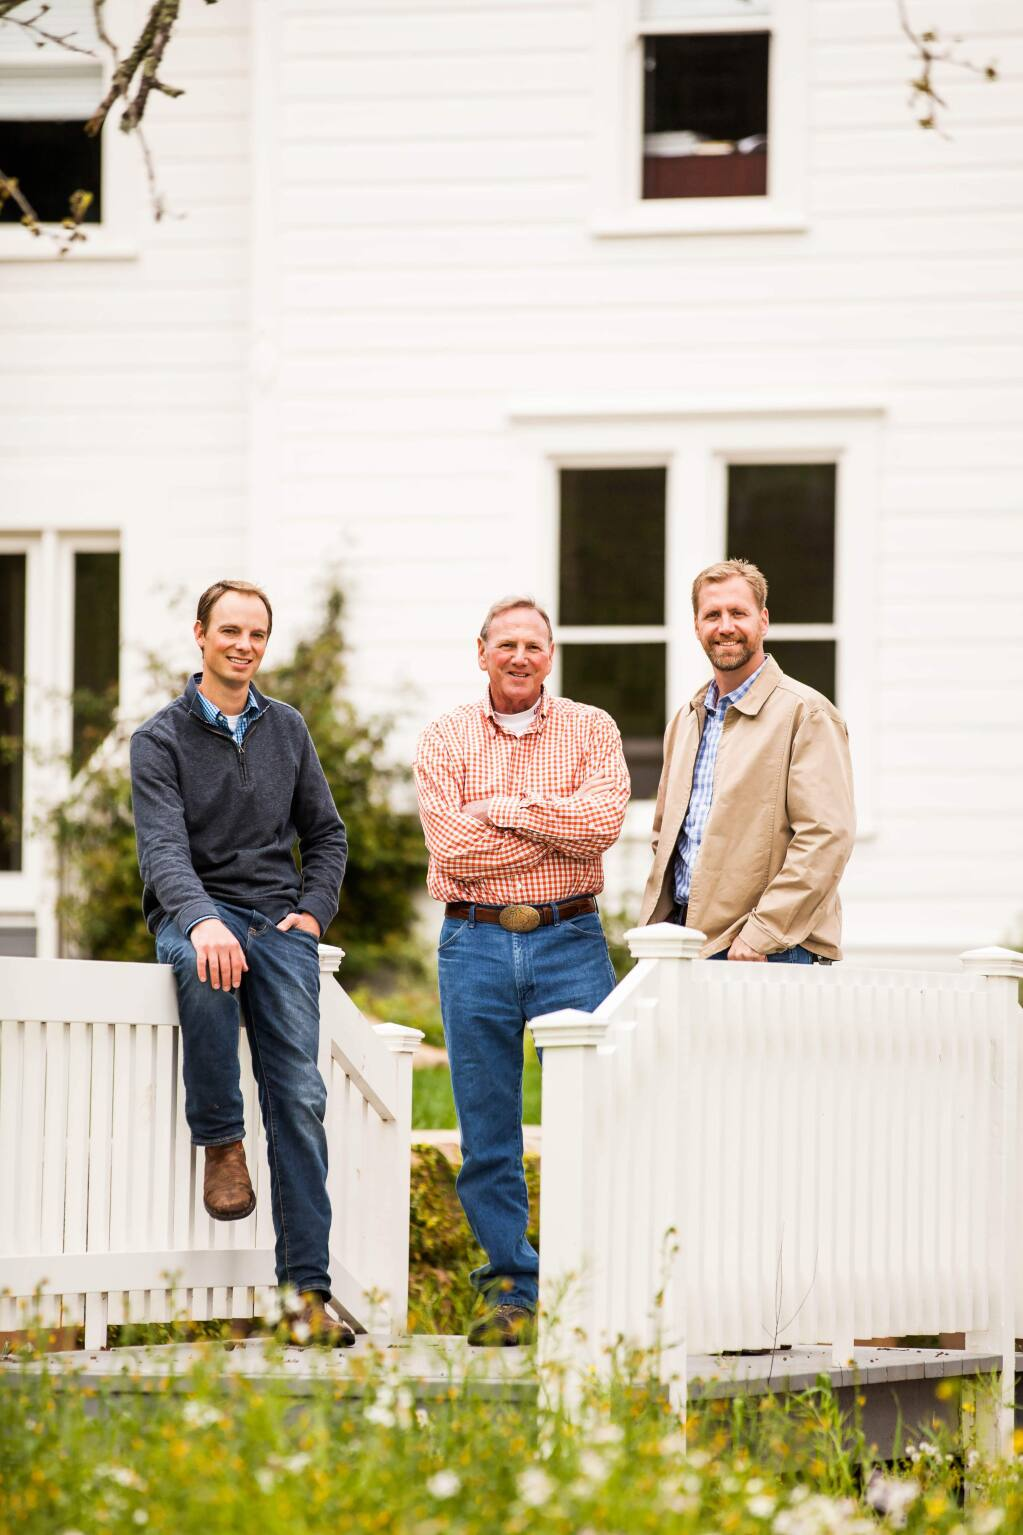 Bettinelli Vineyards is operated by Paul Goldberg, father-in-law Larry Bettinelli and brother-in-law Giancarlo Bettinelli. They stand in front of the vineyard estate home off Highway 29 in the Oak Knoll area of Napa Valley on March 6, 2016. (Brie Buhman Photography)